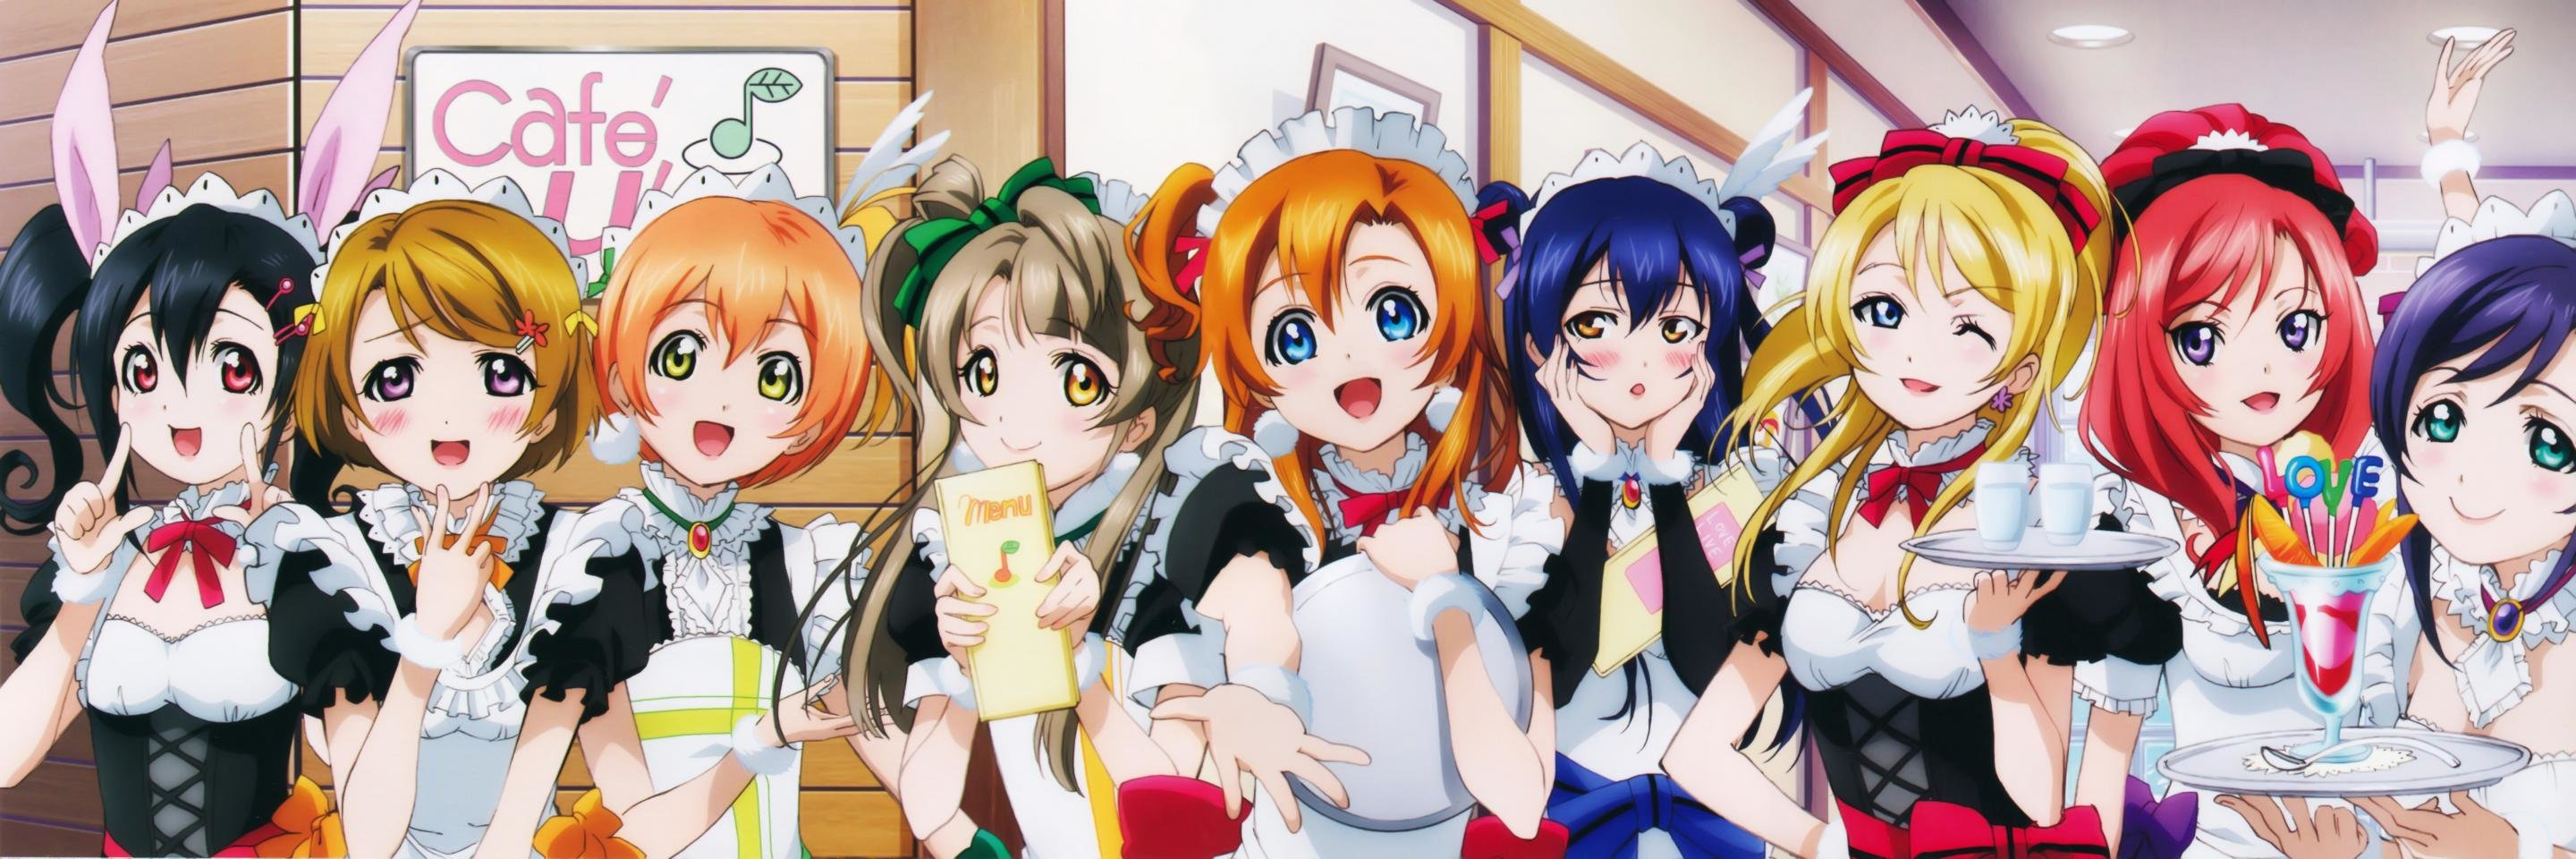 High resolution Love Live! dual monitor 2880x960 wallpaper ID:152238 for desktop